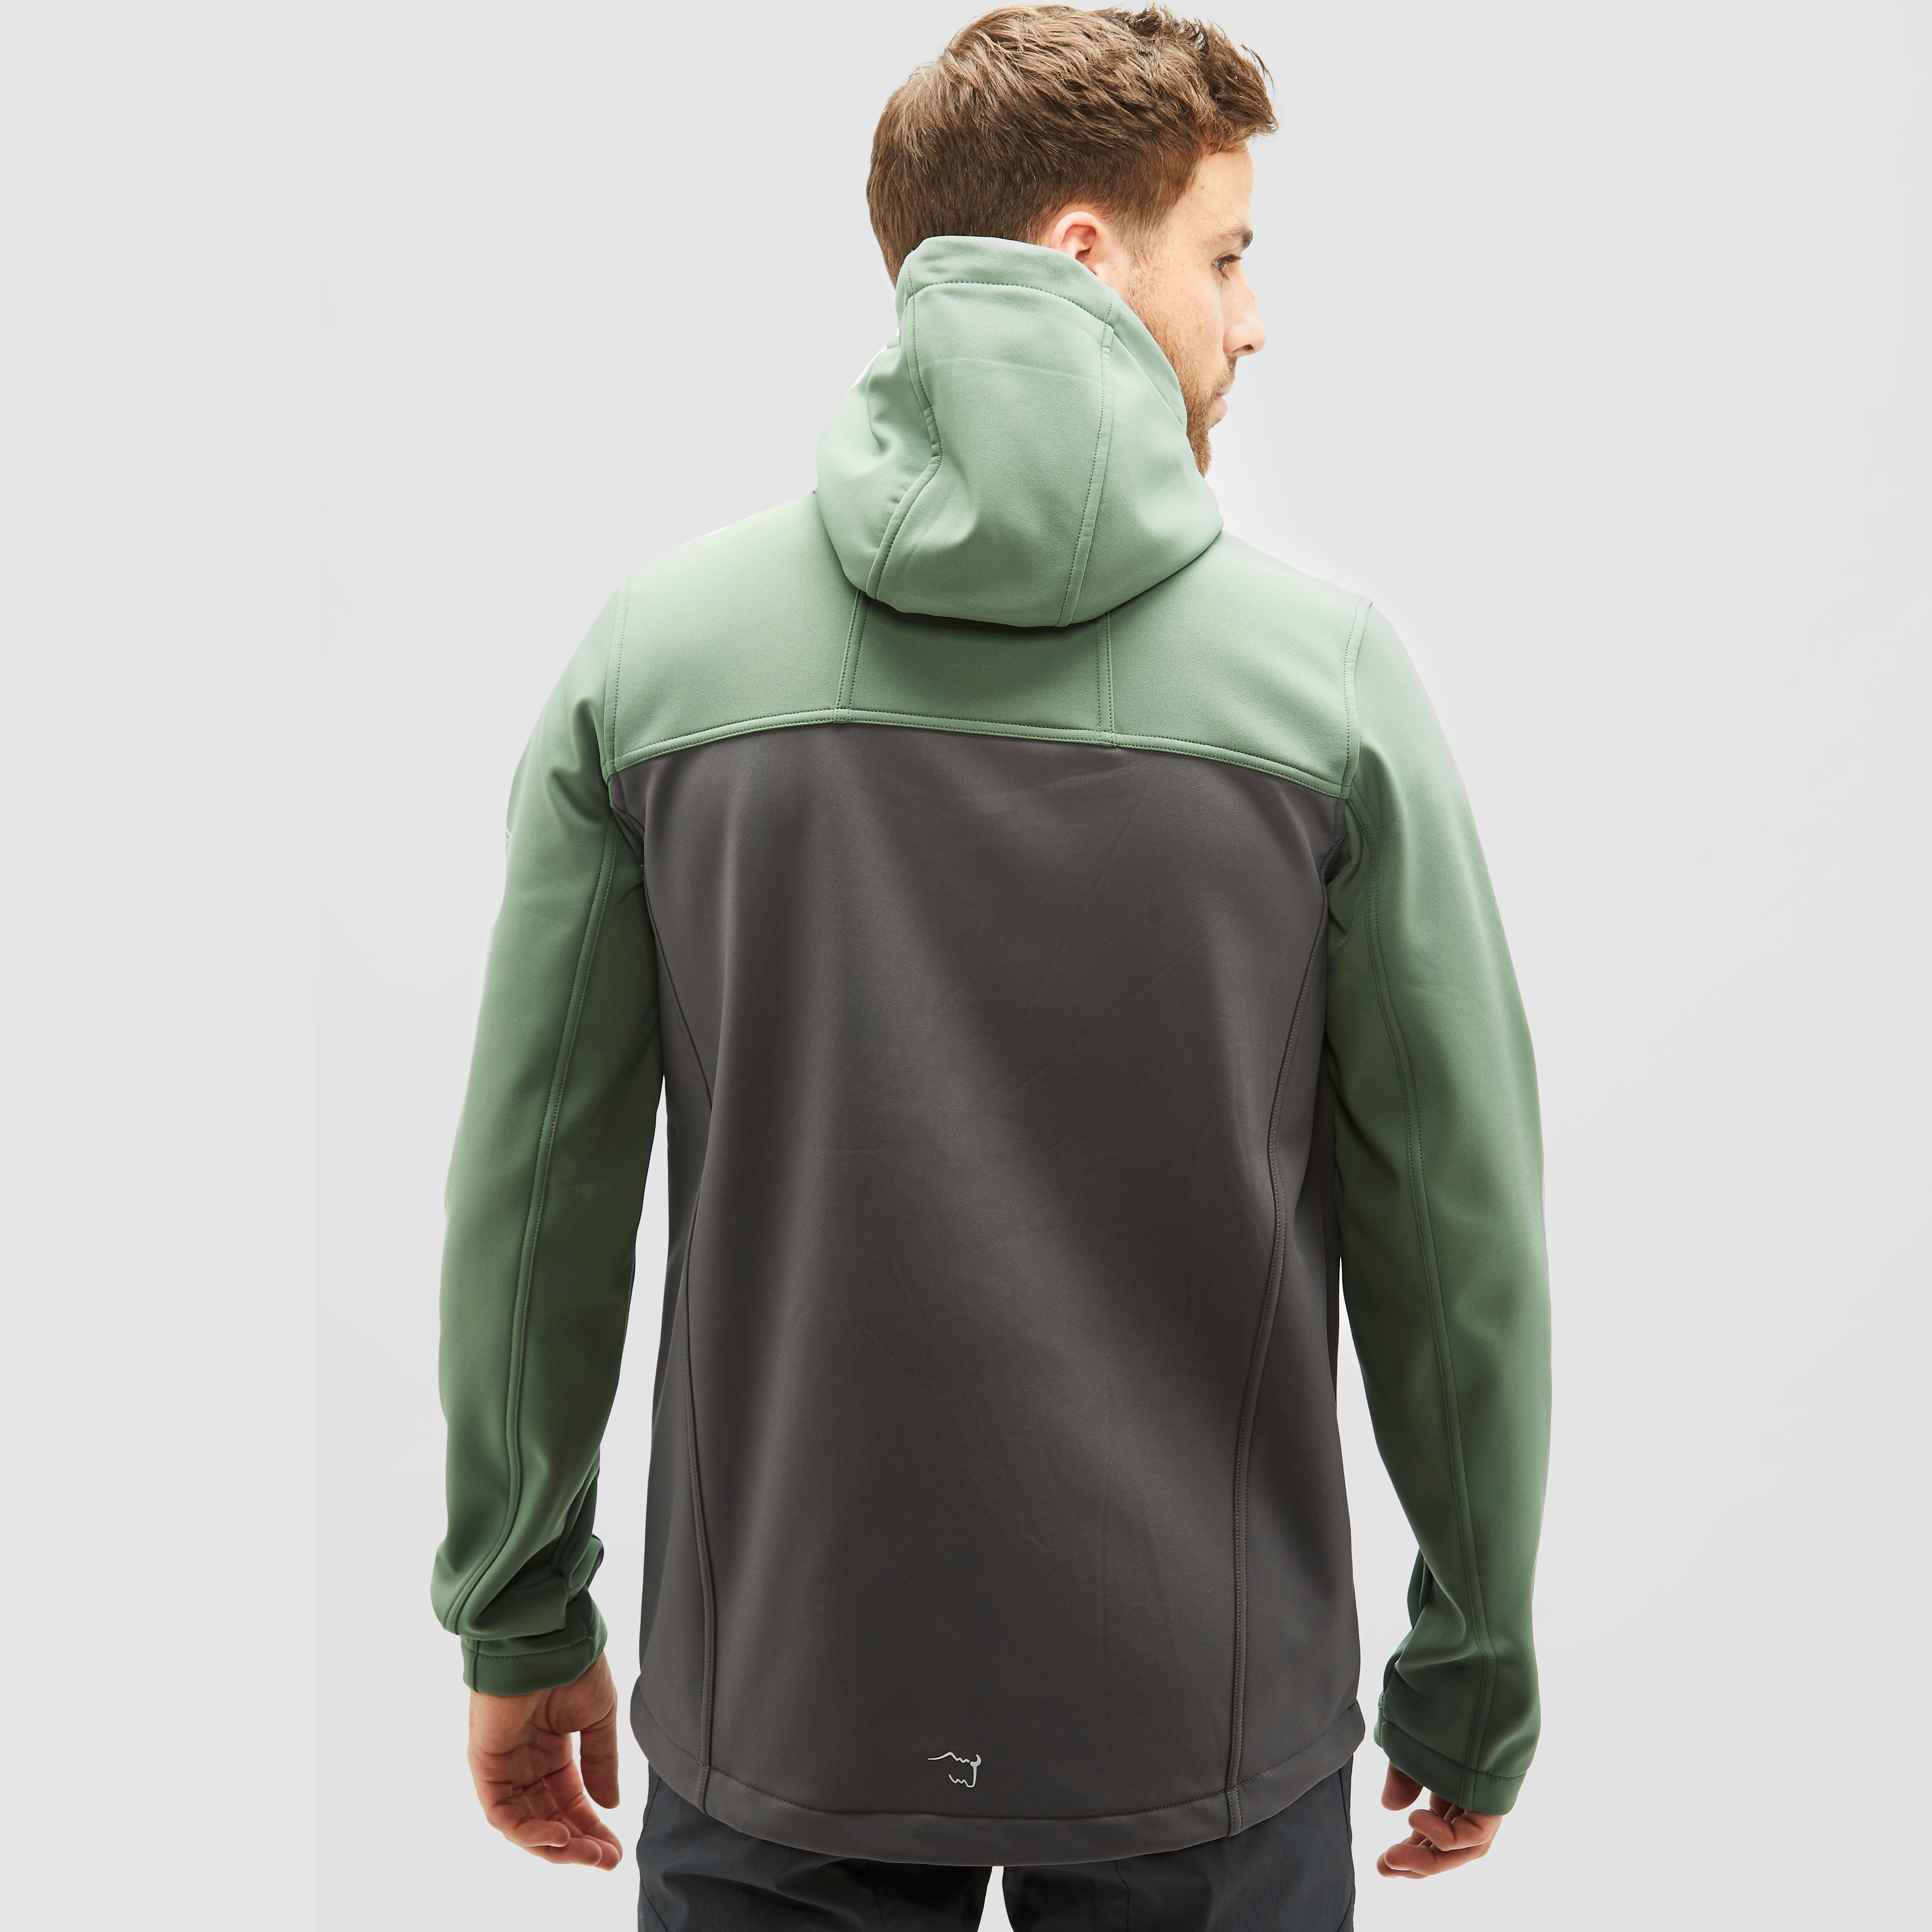 WILDEBEAST CHANCE SOFTSHELL GROEN HEREN